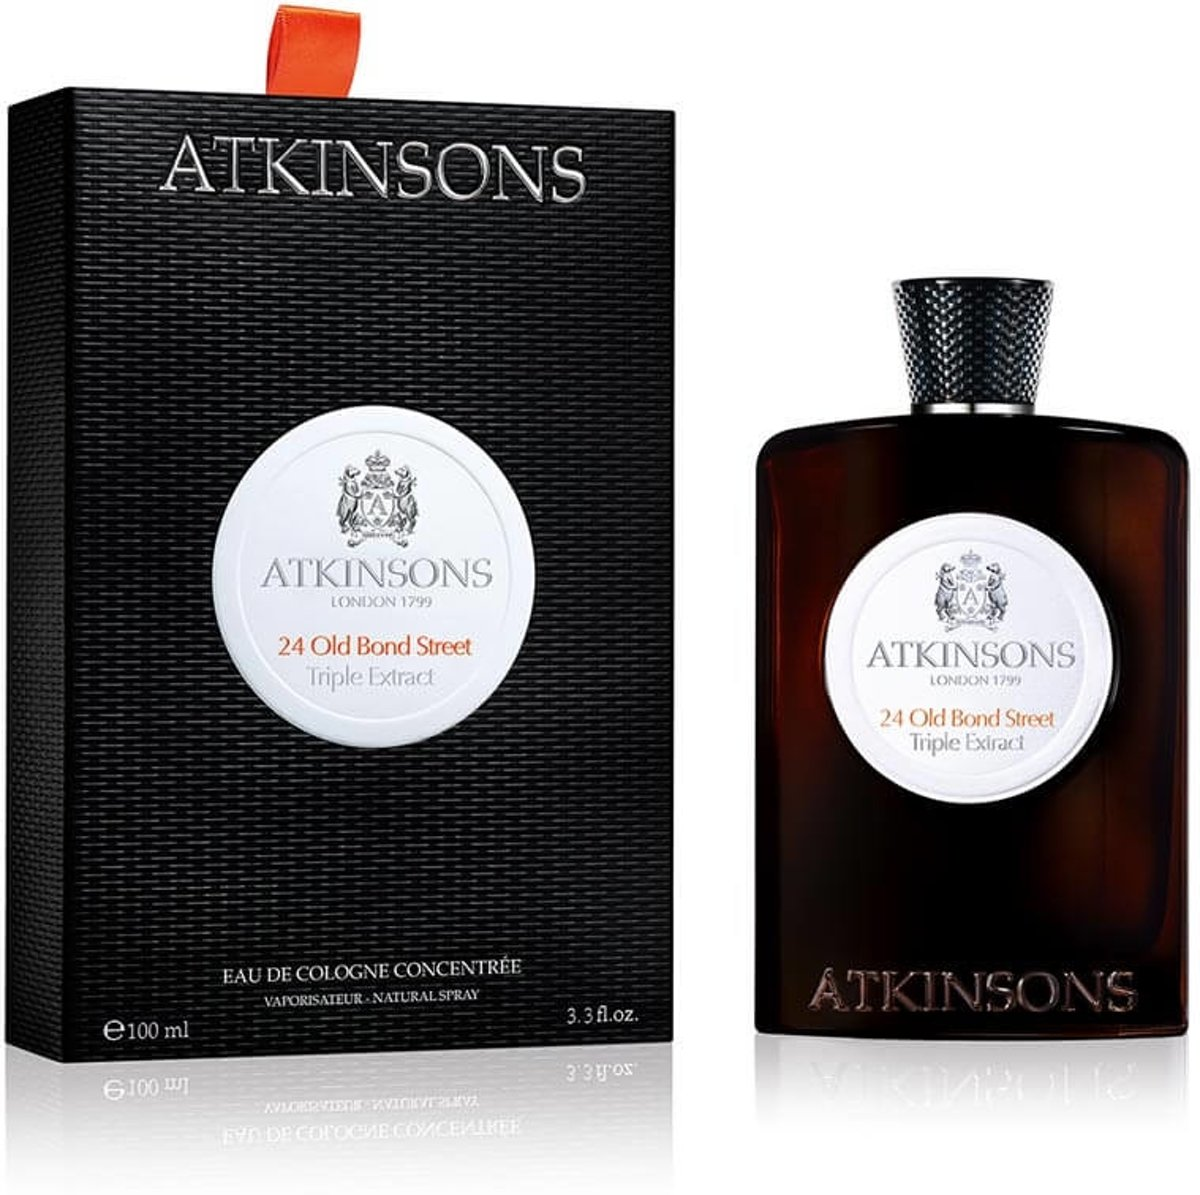 Atkinsons 1799 24 Old Bond Street Triple Extract 100ml eau de cologne